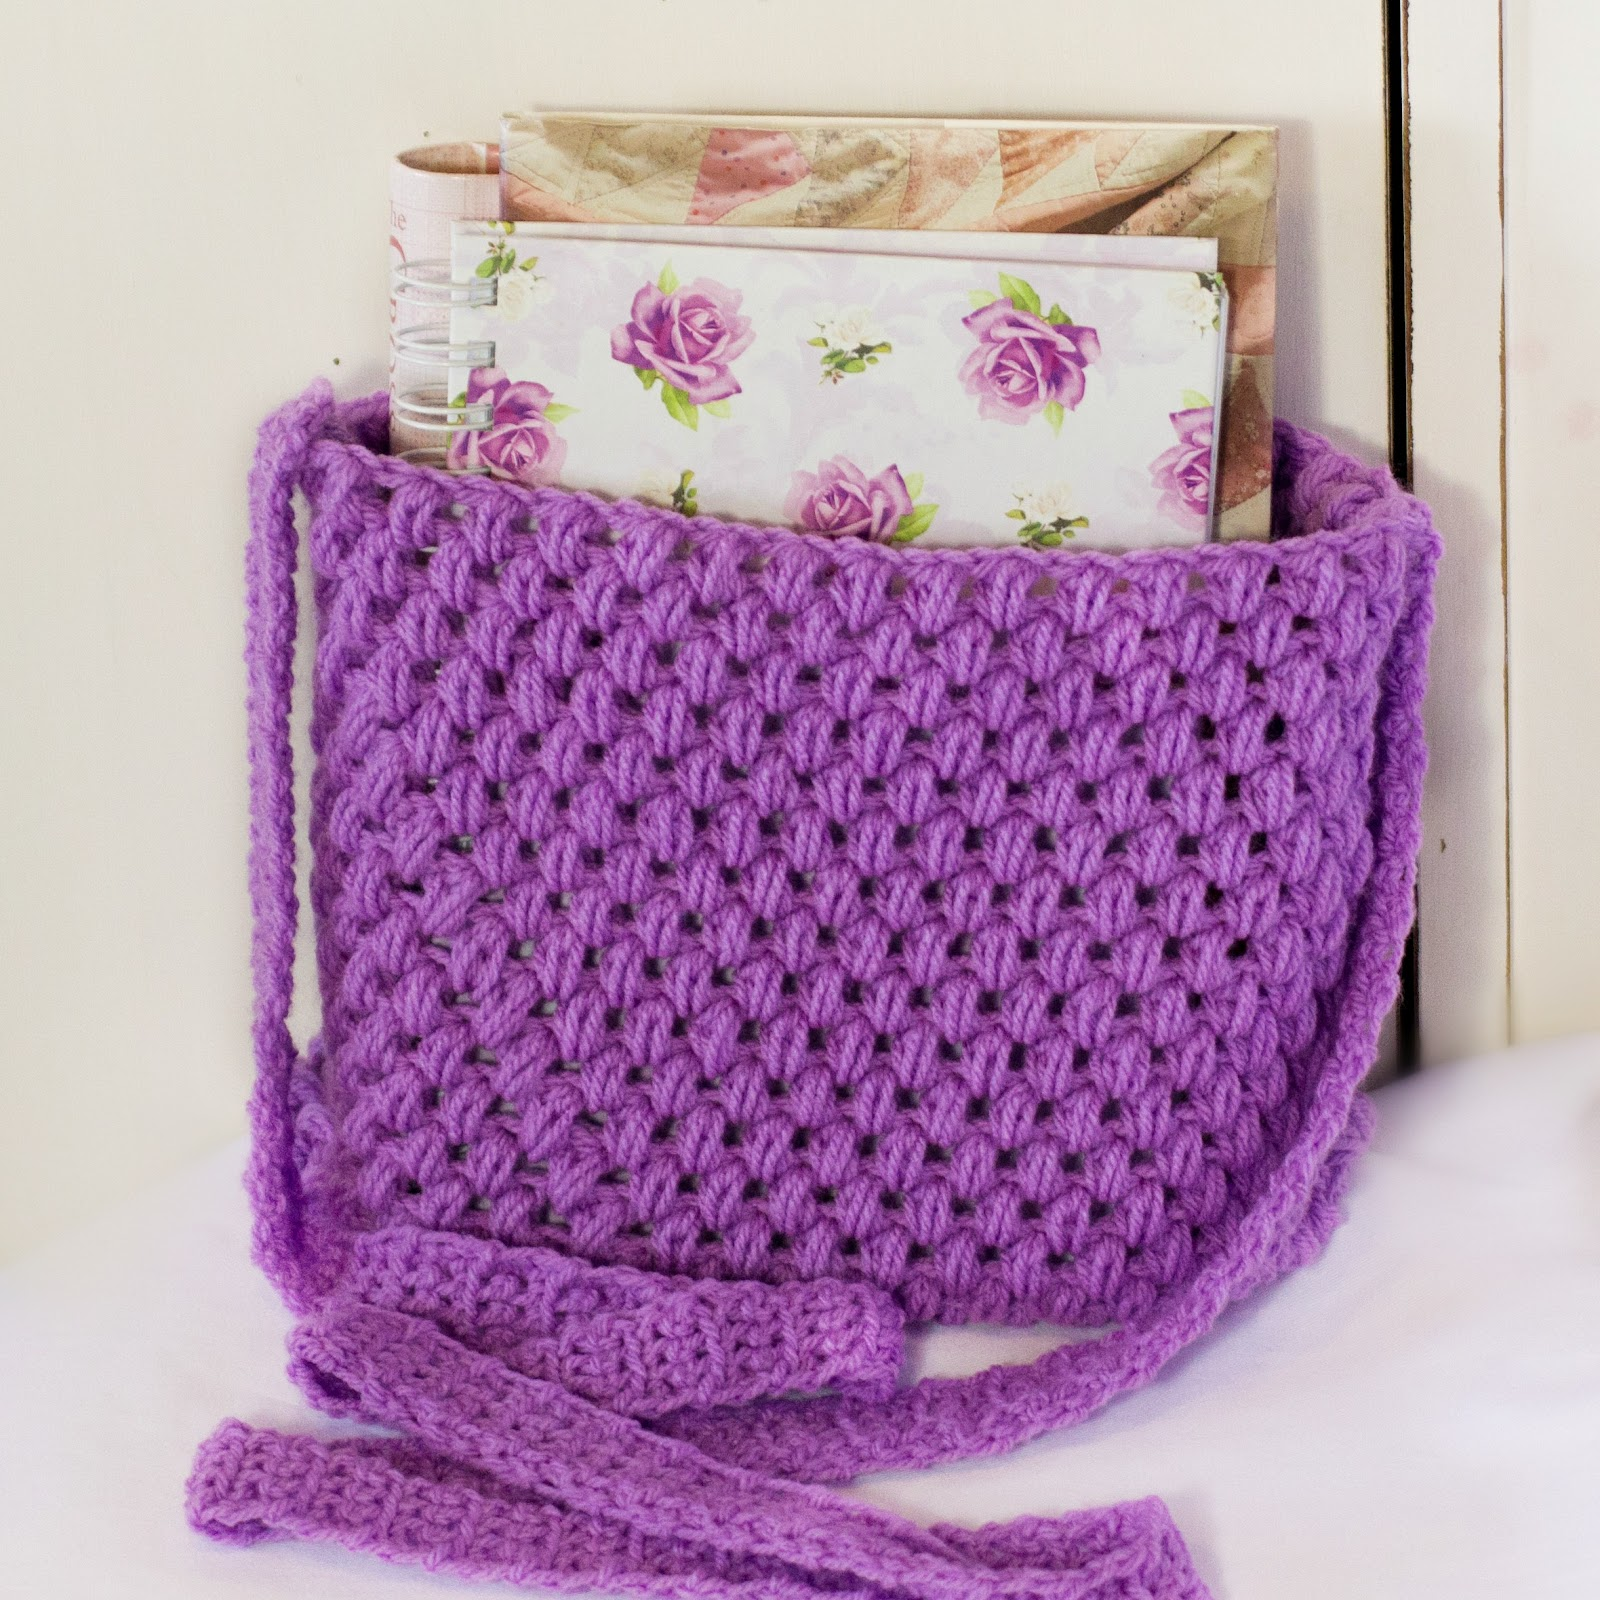 Free Crochet Pattern Bag : ... Craft, Crochet, Create: Out and About ~ Easy Tote Bag Crochet Pattern